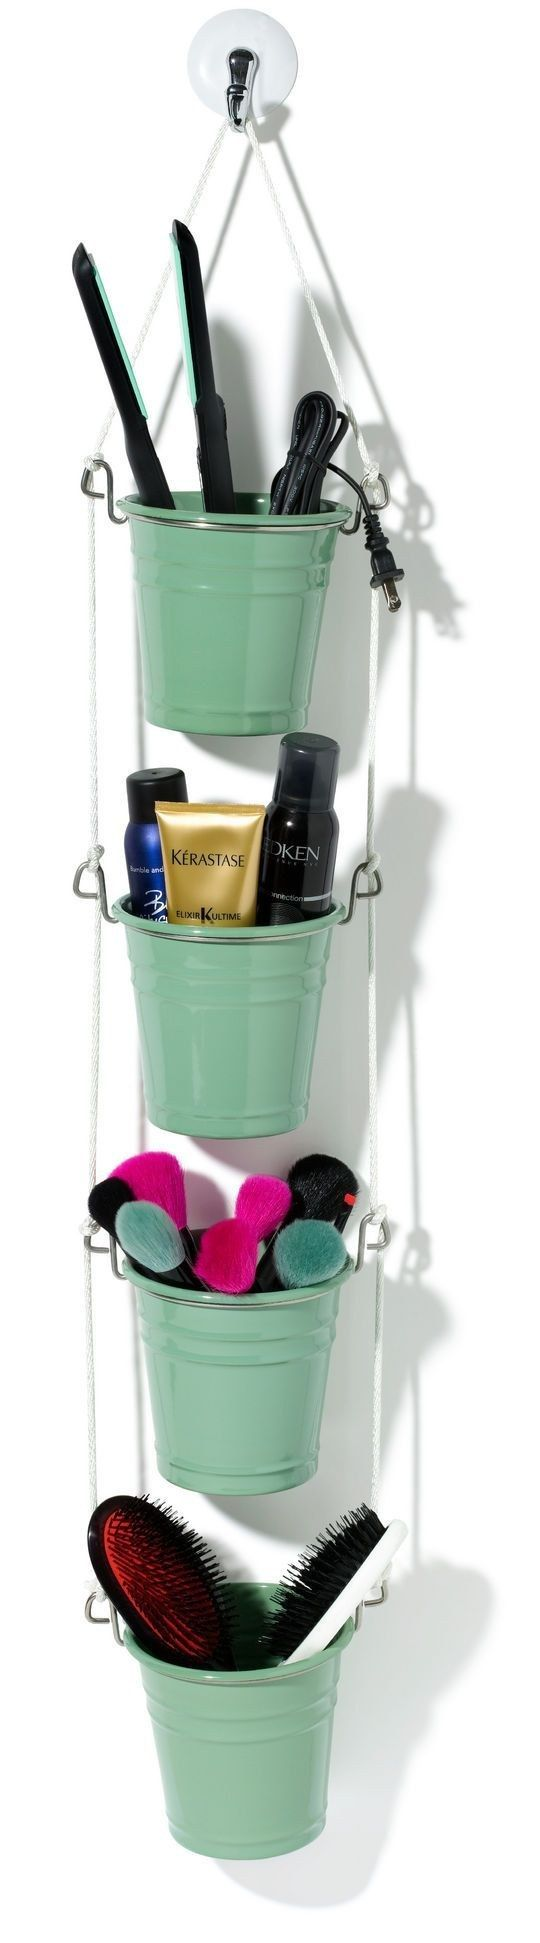 Rope and Fintorp cutler caddies are a creative way to add some wall storage to a bathroom. | 37 Clever Ways To Organize Your Entire Life With Ikea